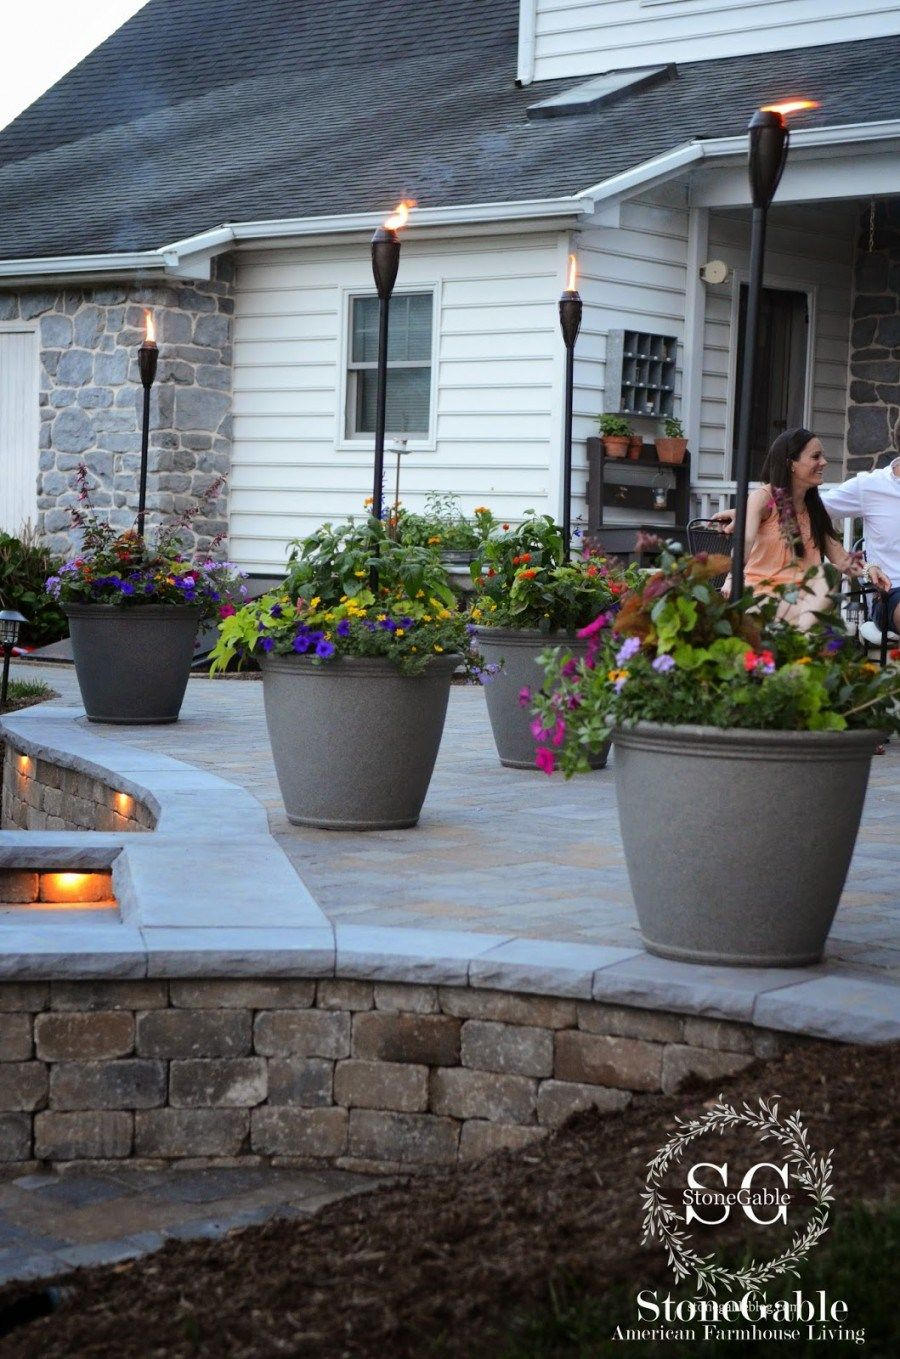 8 WAYS TO PERK UP YOUR PORCH AND PATIO FOR SPRING AND SUMMER